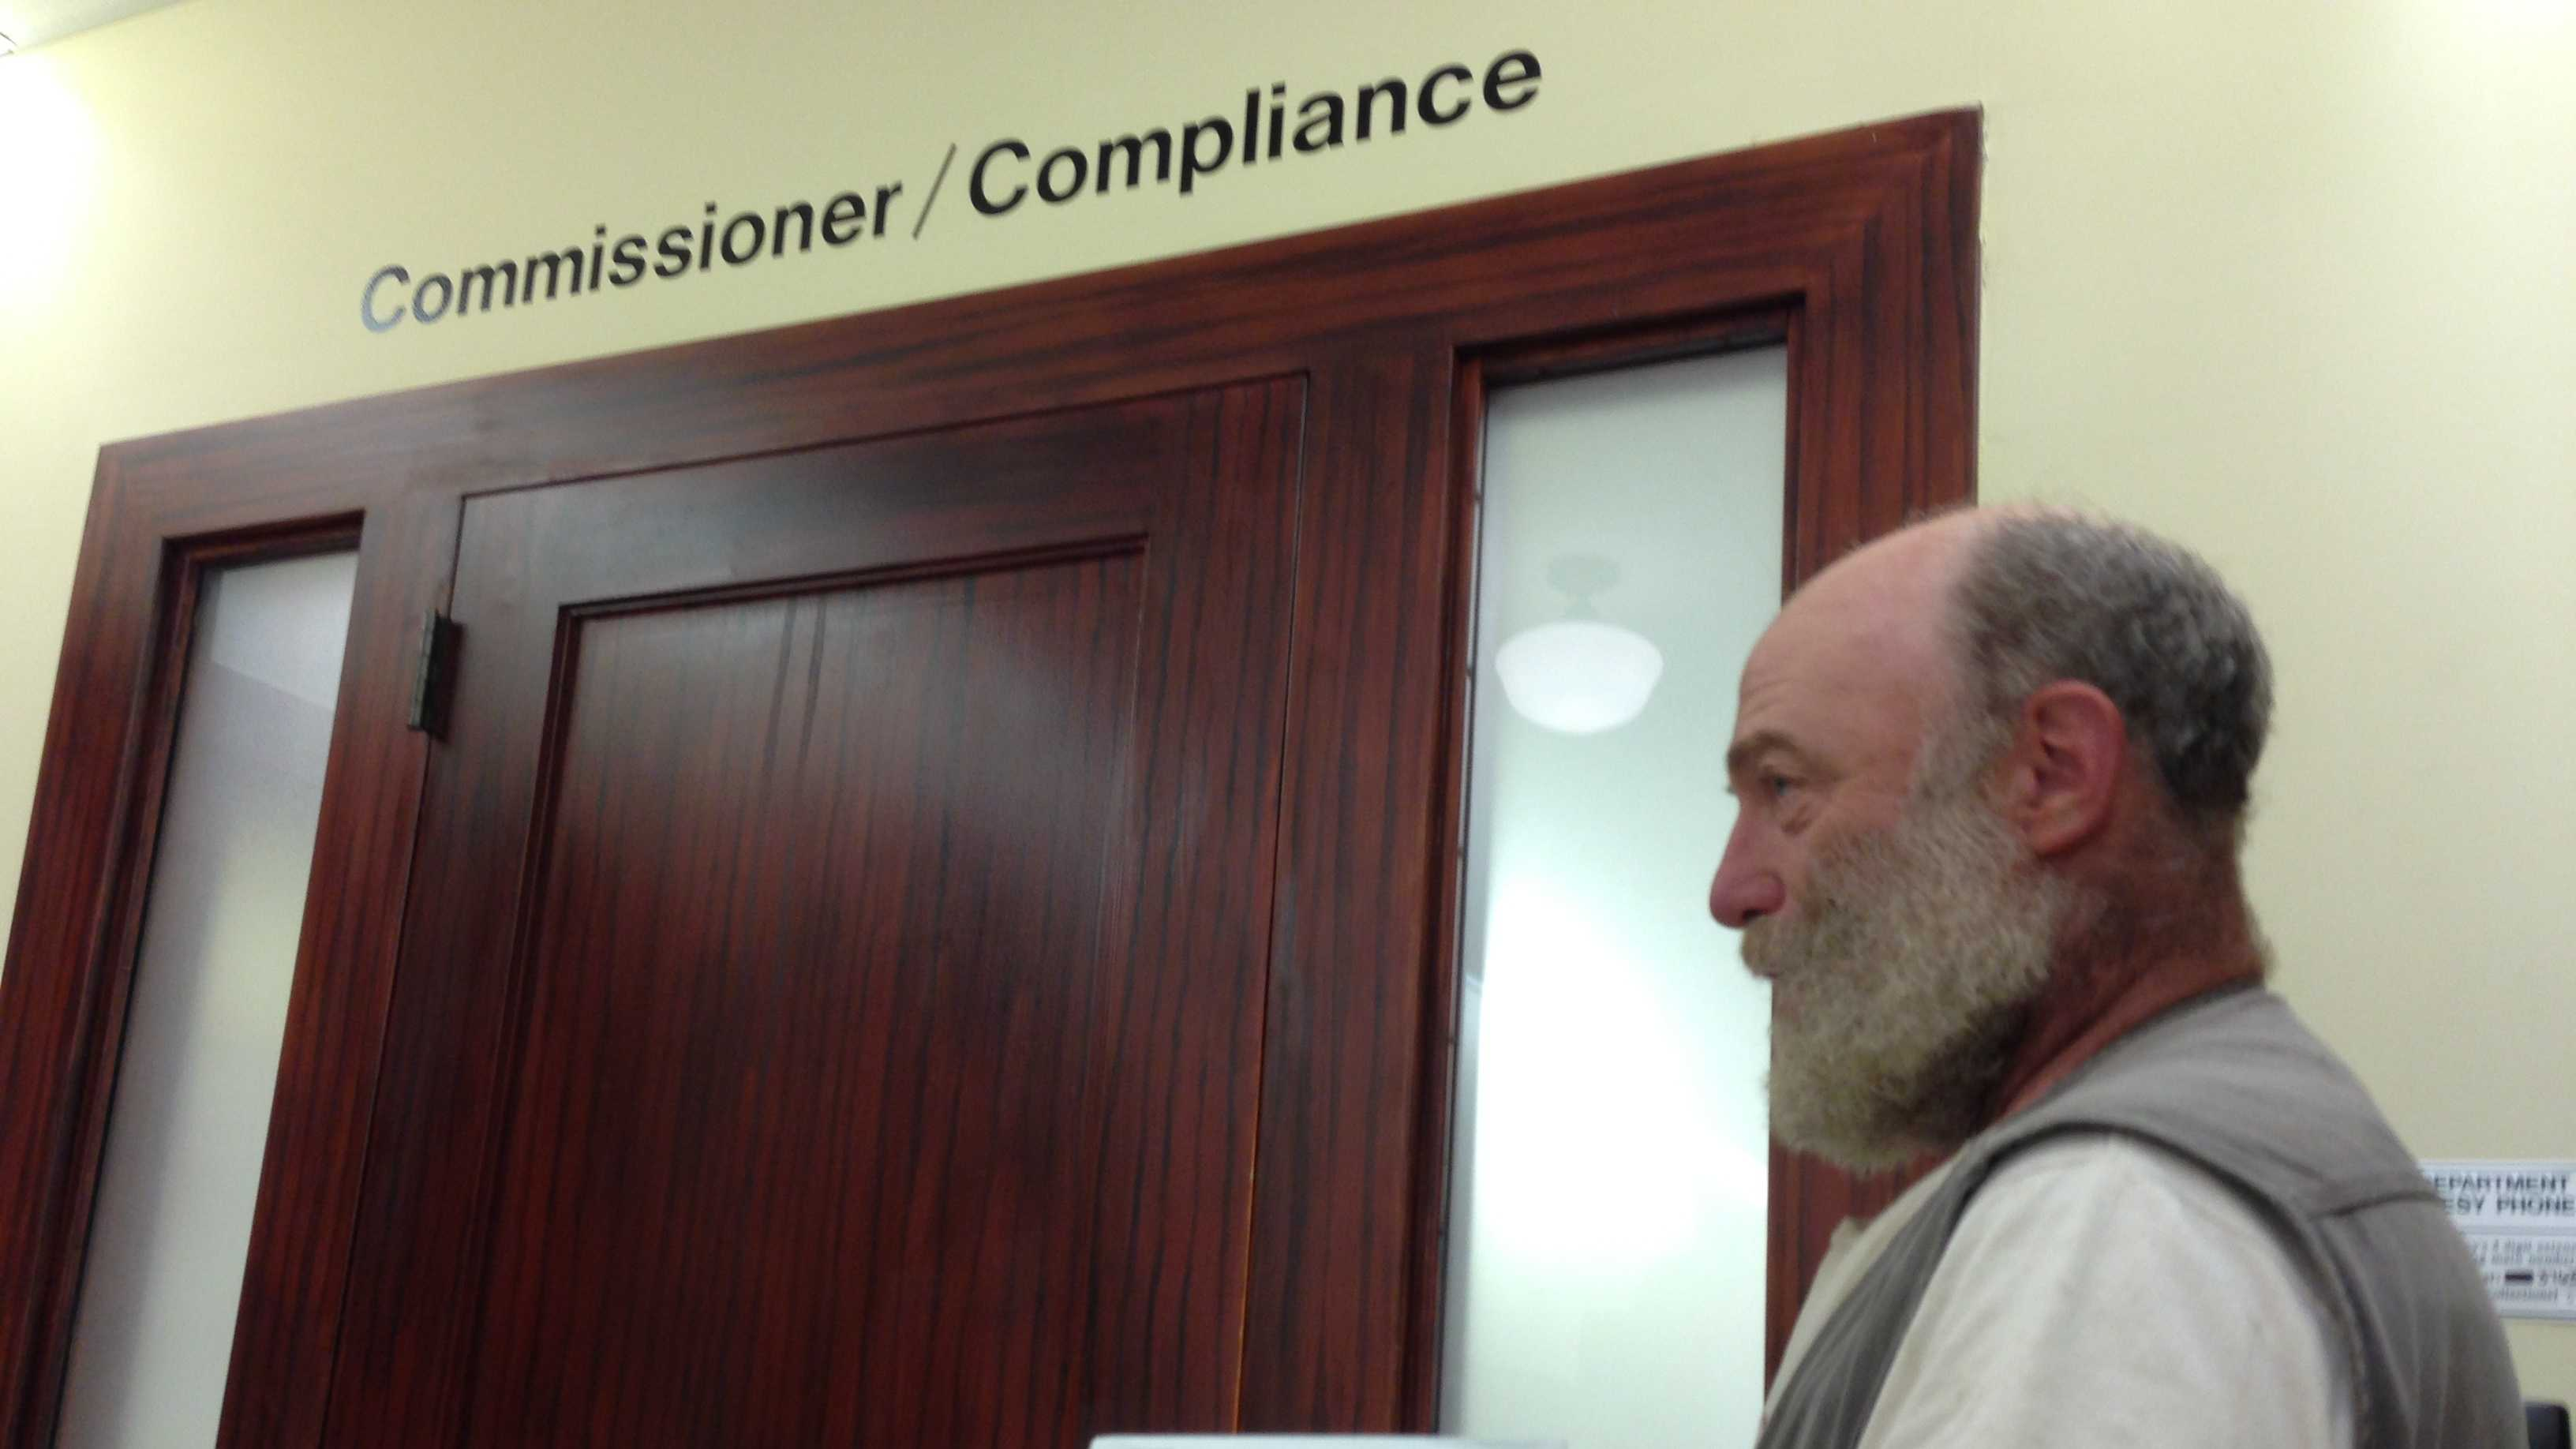 Karl Hammer, president of Vermont Compost Company, drops off his appeal at tax department, which has demanded he pay $115k in back taxes and penalties.